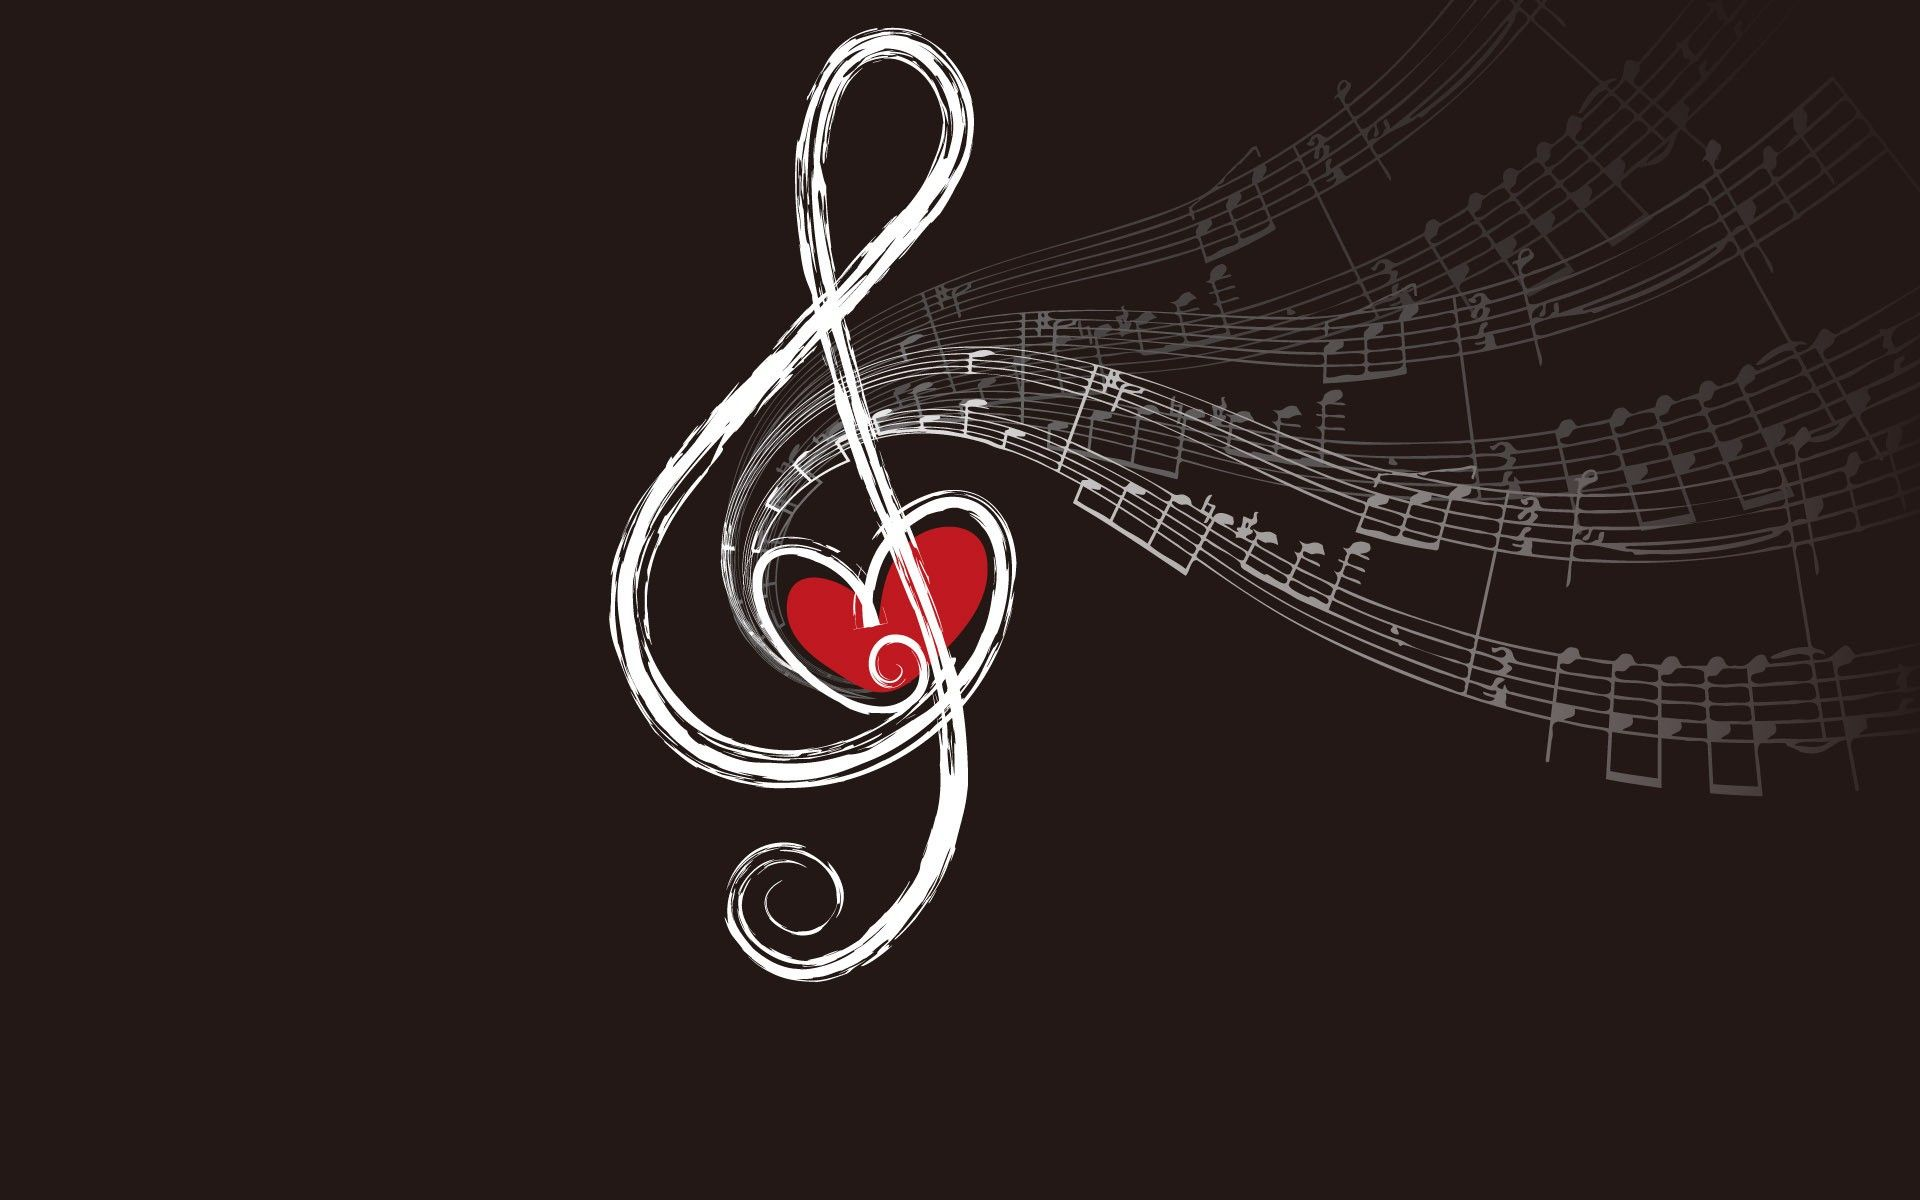 I Love Music Hd Wallpaper For Mobile: Love-music-wallpaper-Love-Music-Notes-Brown-Background